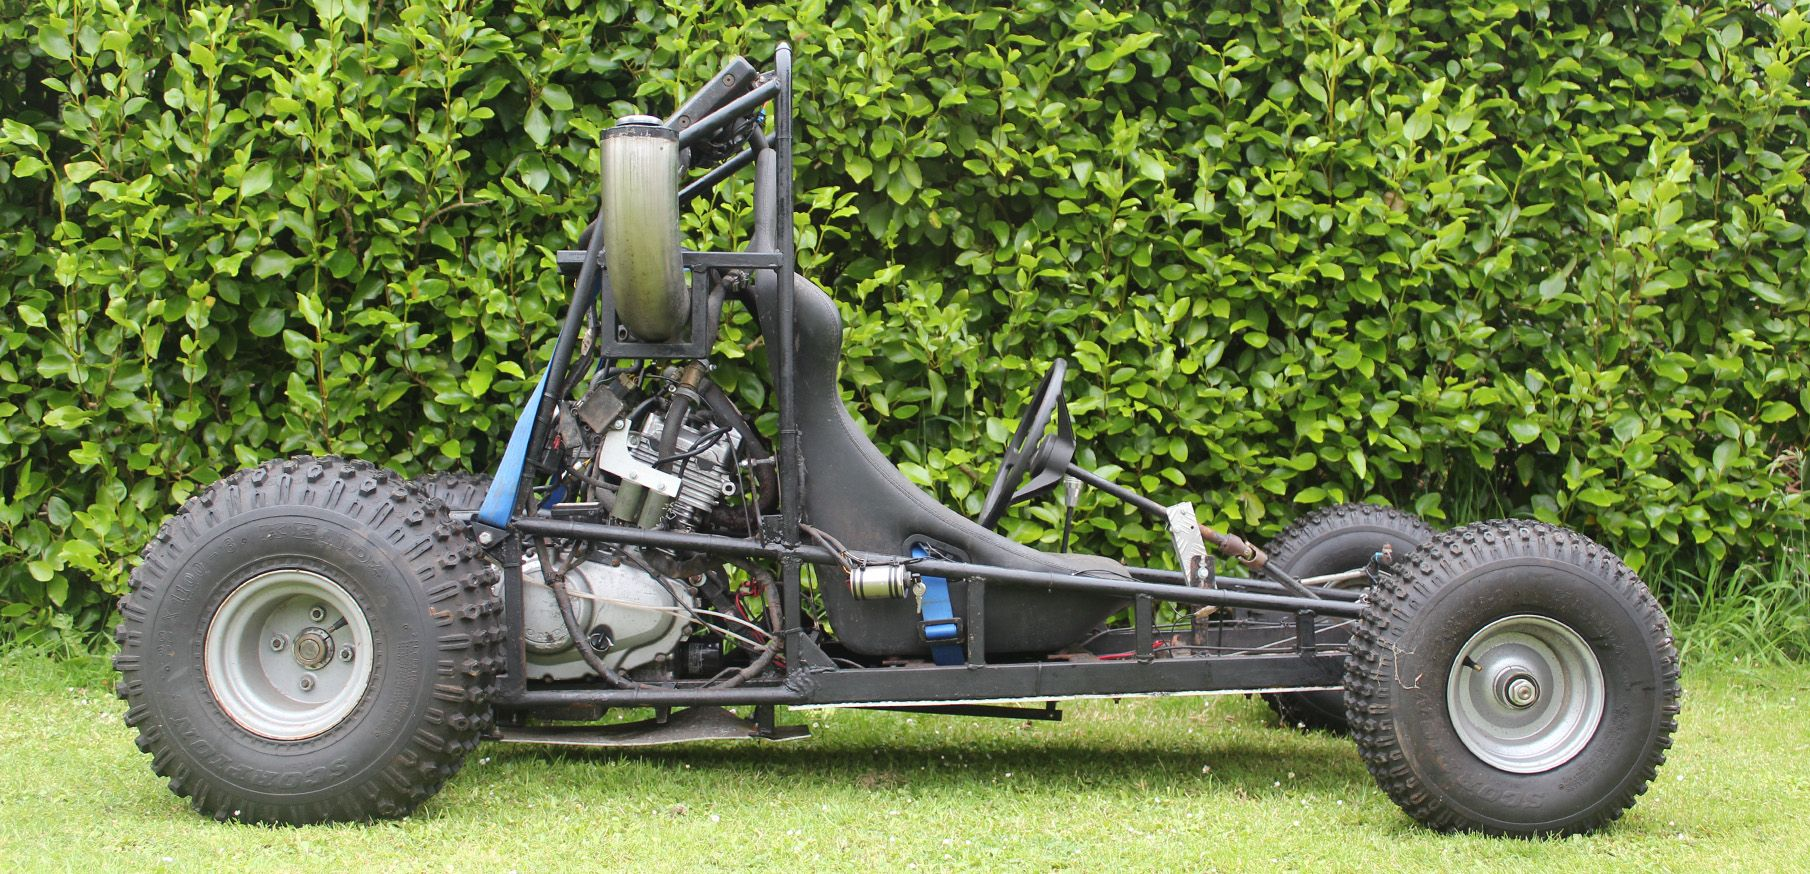 go kart with motorcycle engine plans | disrespect1st com